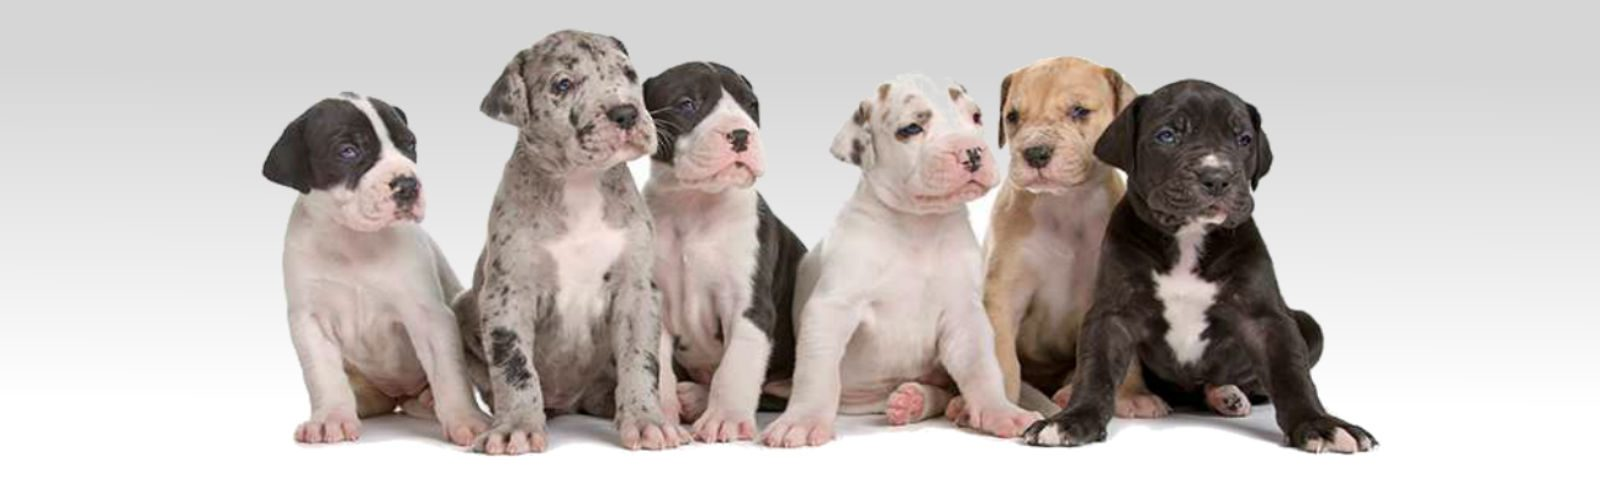 dane puppies